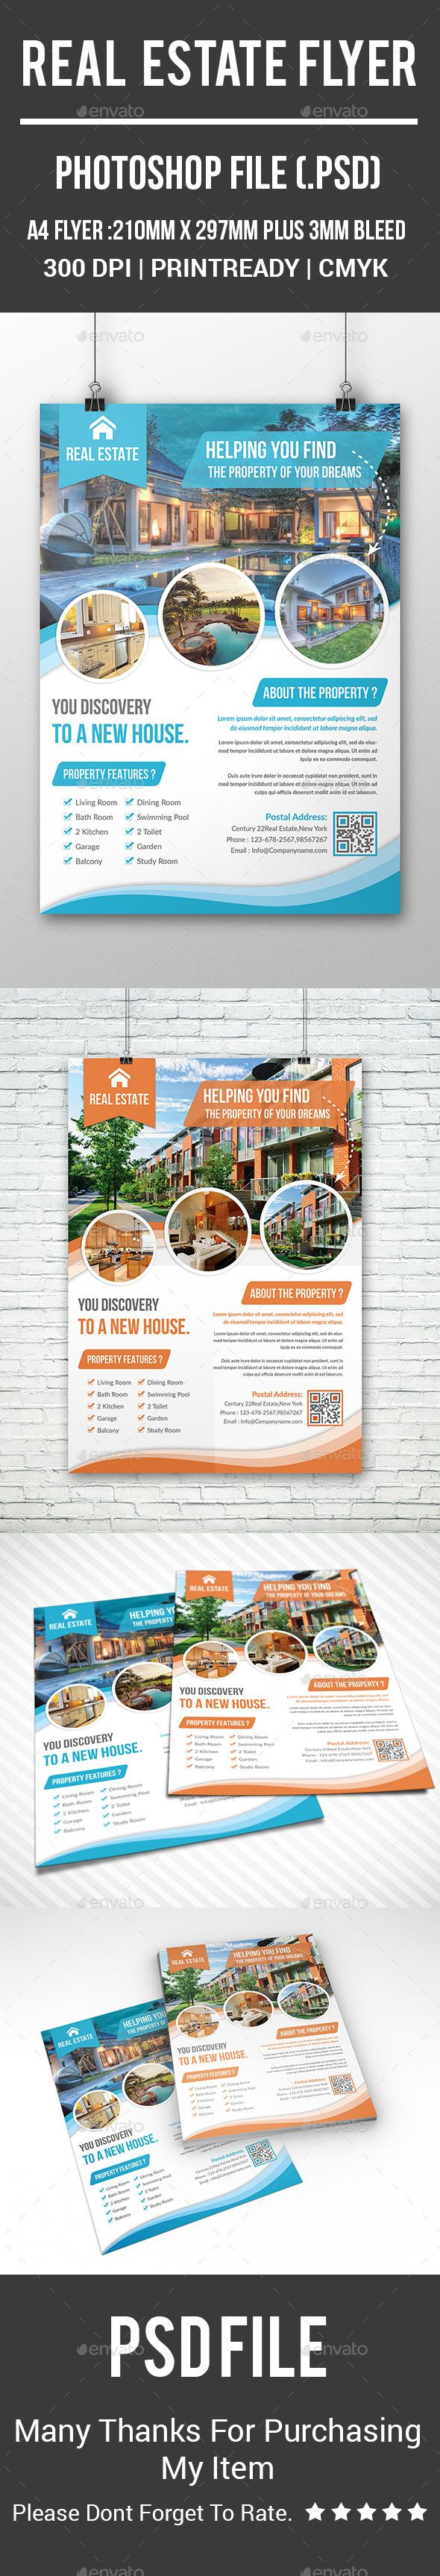 best ideas about real estate flyers real estate 17 best ideas about real estate flyers real estate marketing real estate career and real estate tips